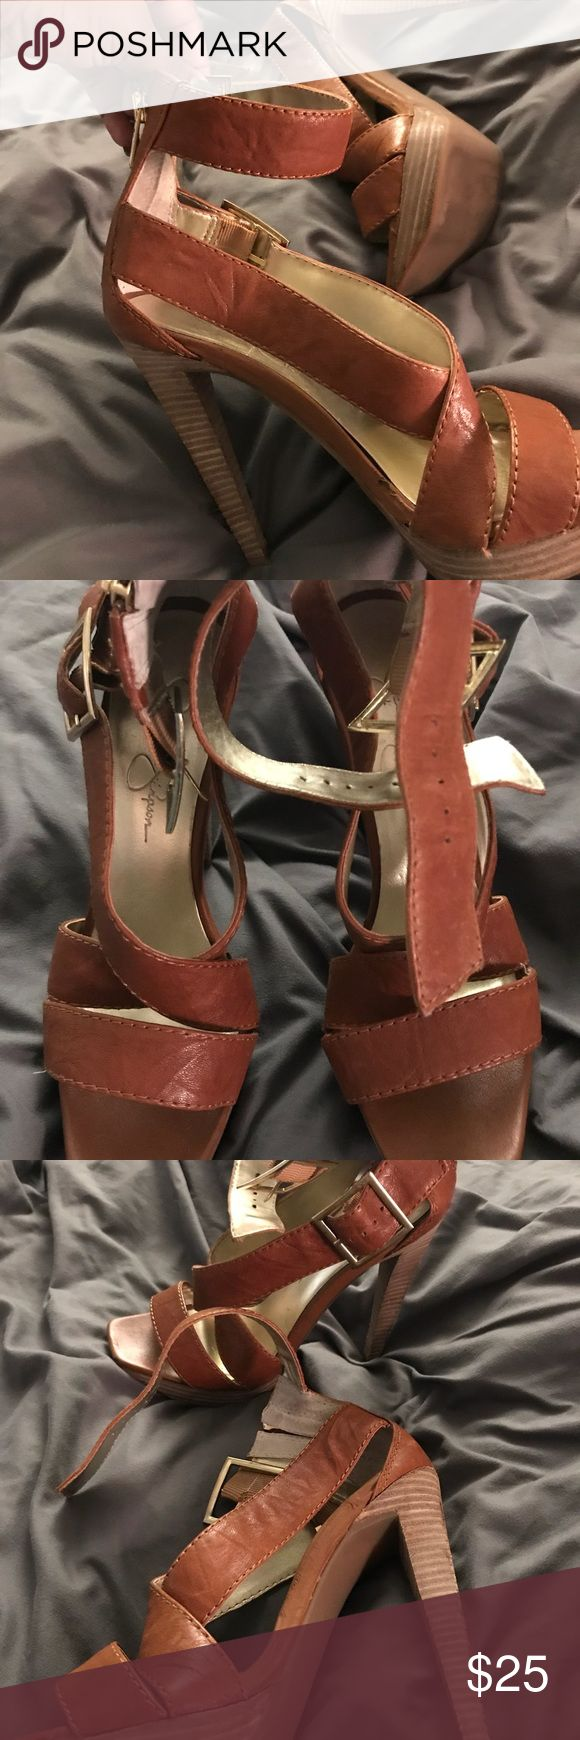 Jessica Simpson high heel ankle strap sandals High heel leather ankle strap Jessica Simpson platform sandals. Slightly worn but in good shape. Jessica Simpson Shoes Heels